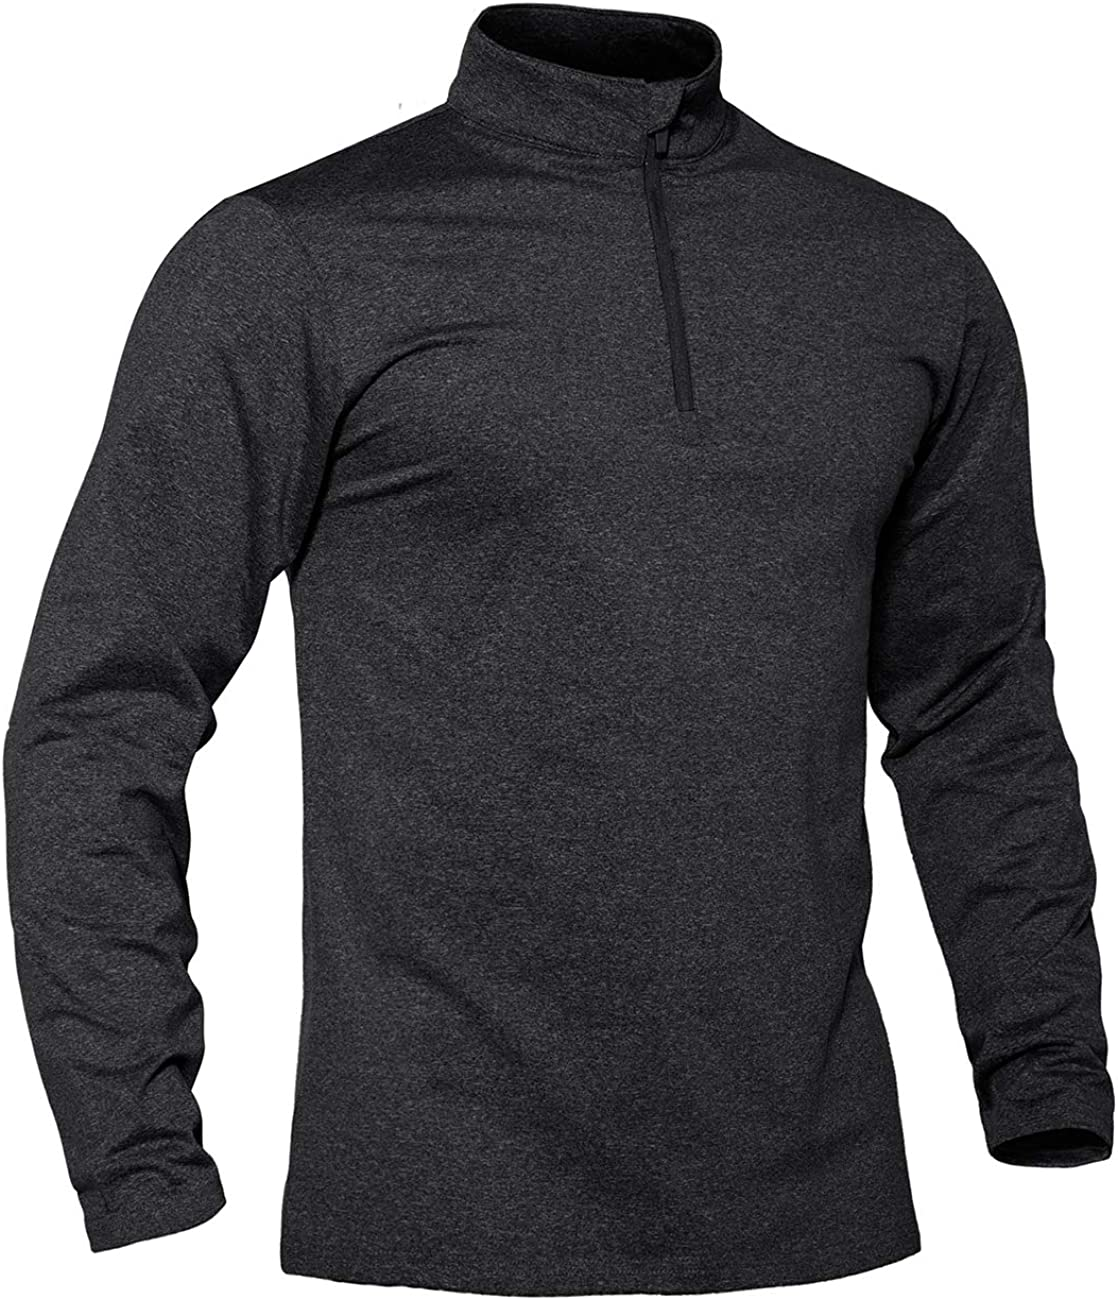 TACVASEN Men's Sports Shirts lowest price 1 4 Fleece Lined Limited price Long Ru Sleeve Zip